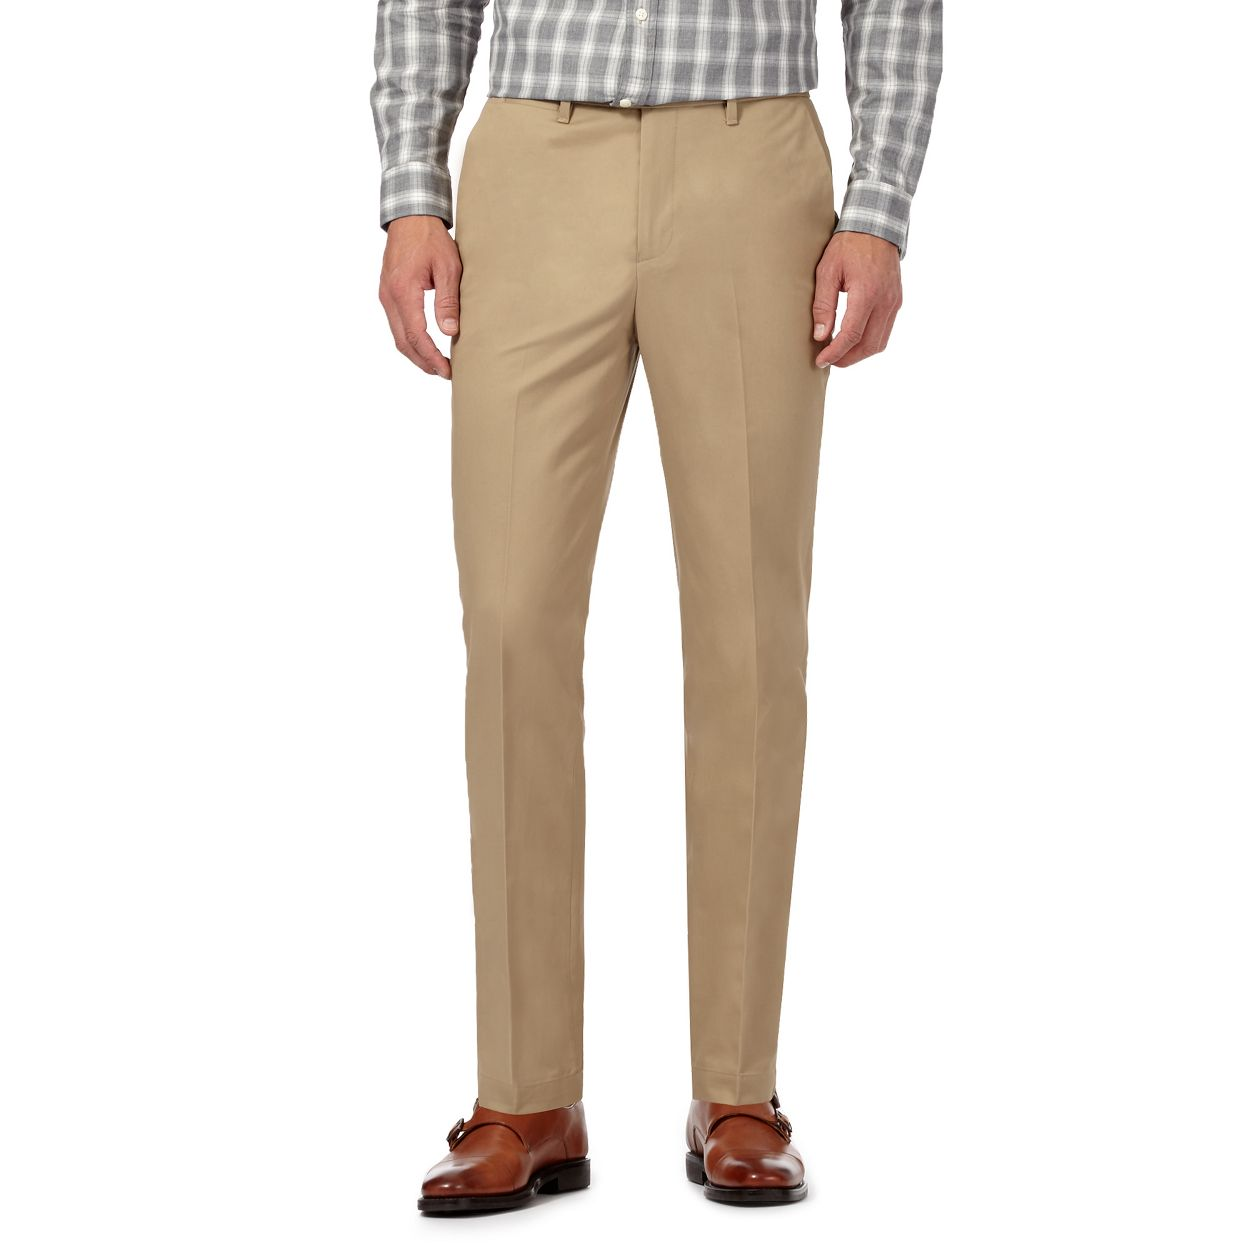 Hammond & Co. by Patrick Grant Natural Beige tailored fit chinos